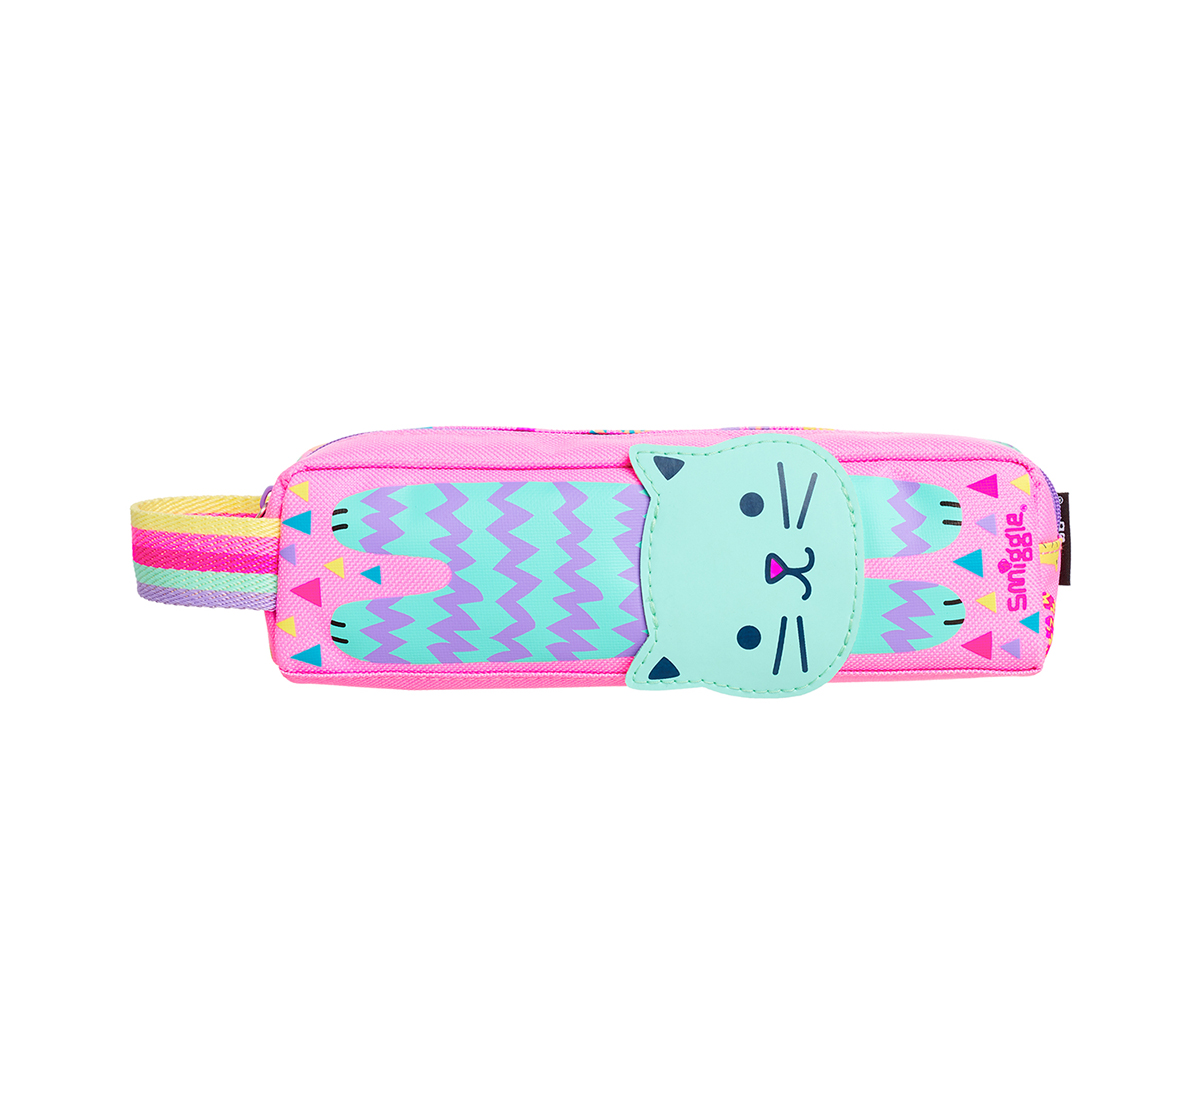 Smiggle | Smiggle Topsy Teeny Tiny Pencil Case - Cat Print Bags for Kids age 3Y+ (Pink)